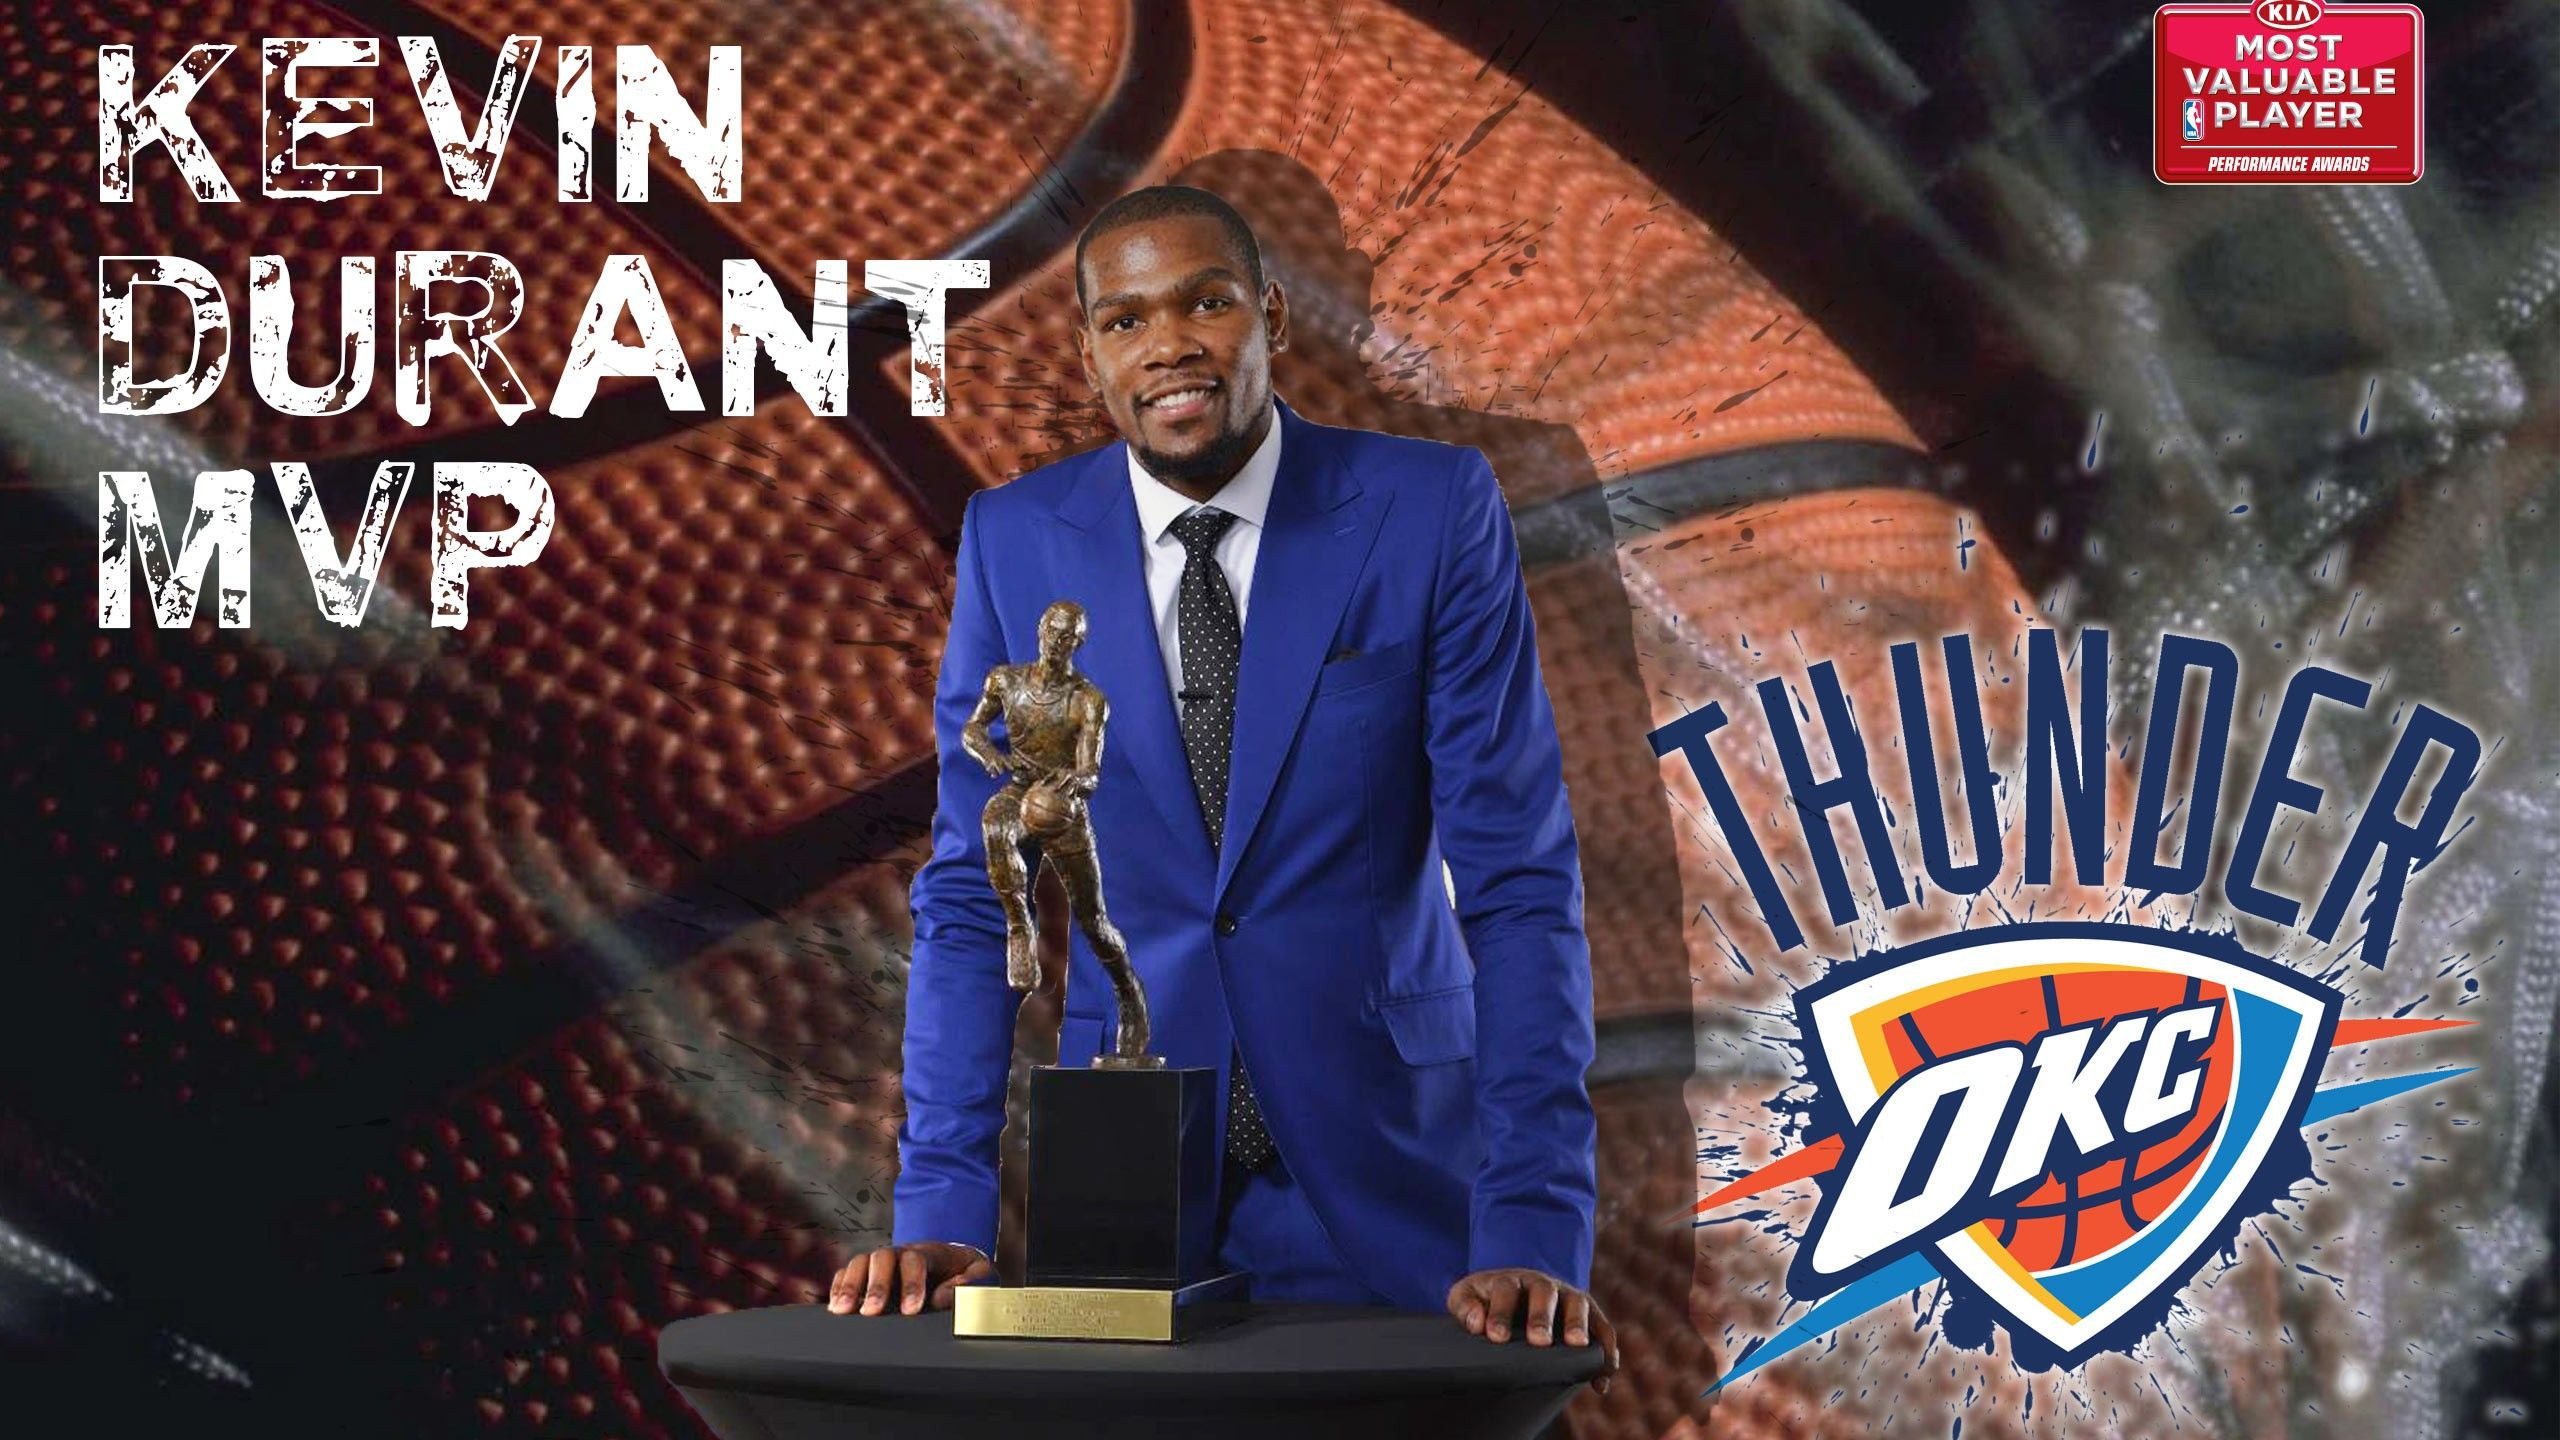 Kevin Durant Wallpapers 2015 HD 2560x1440